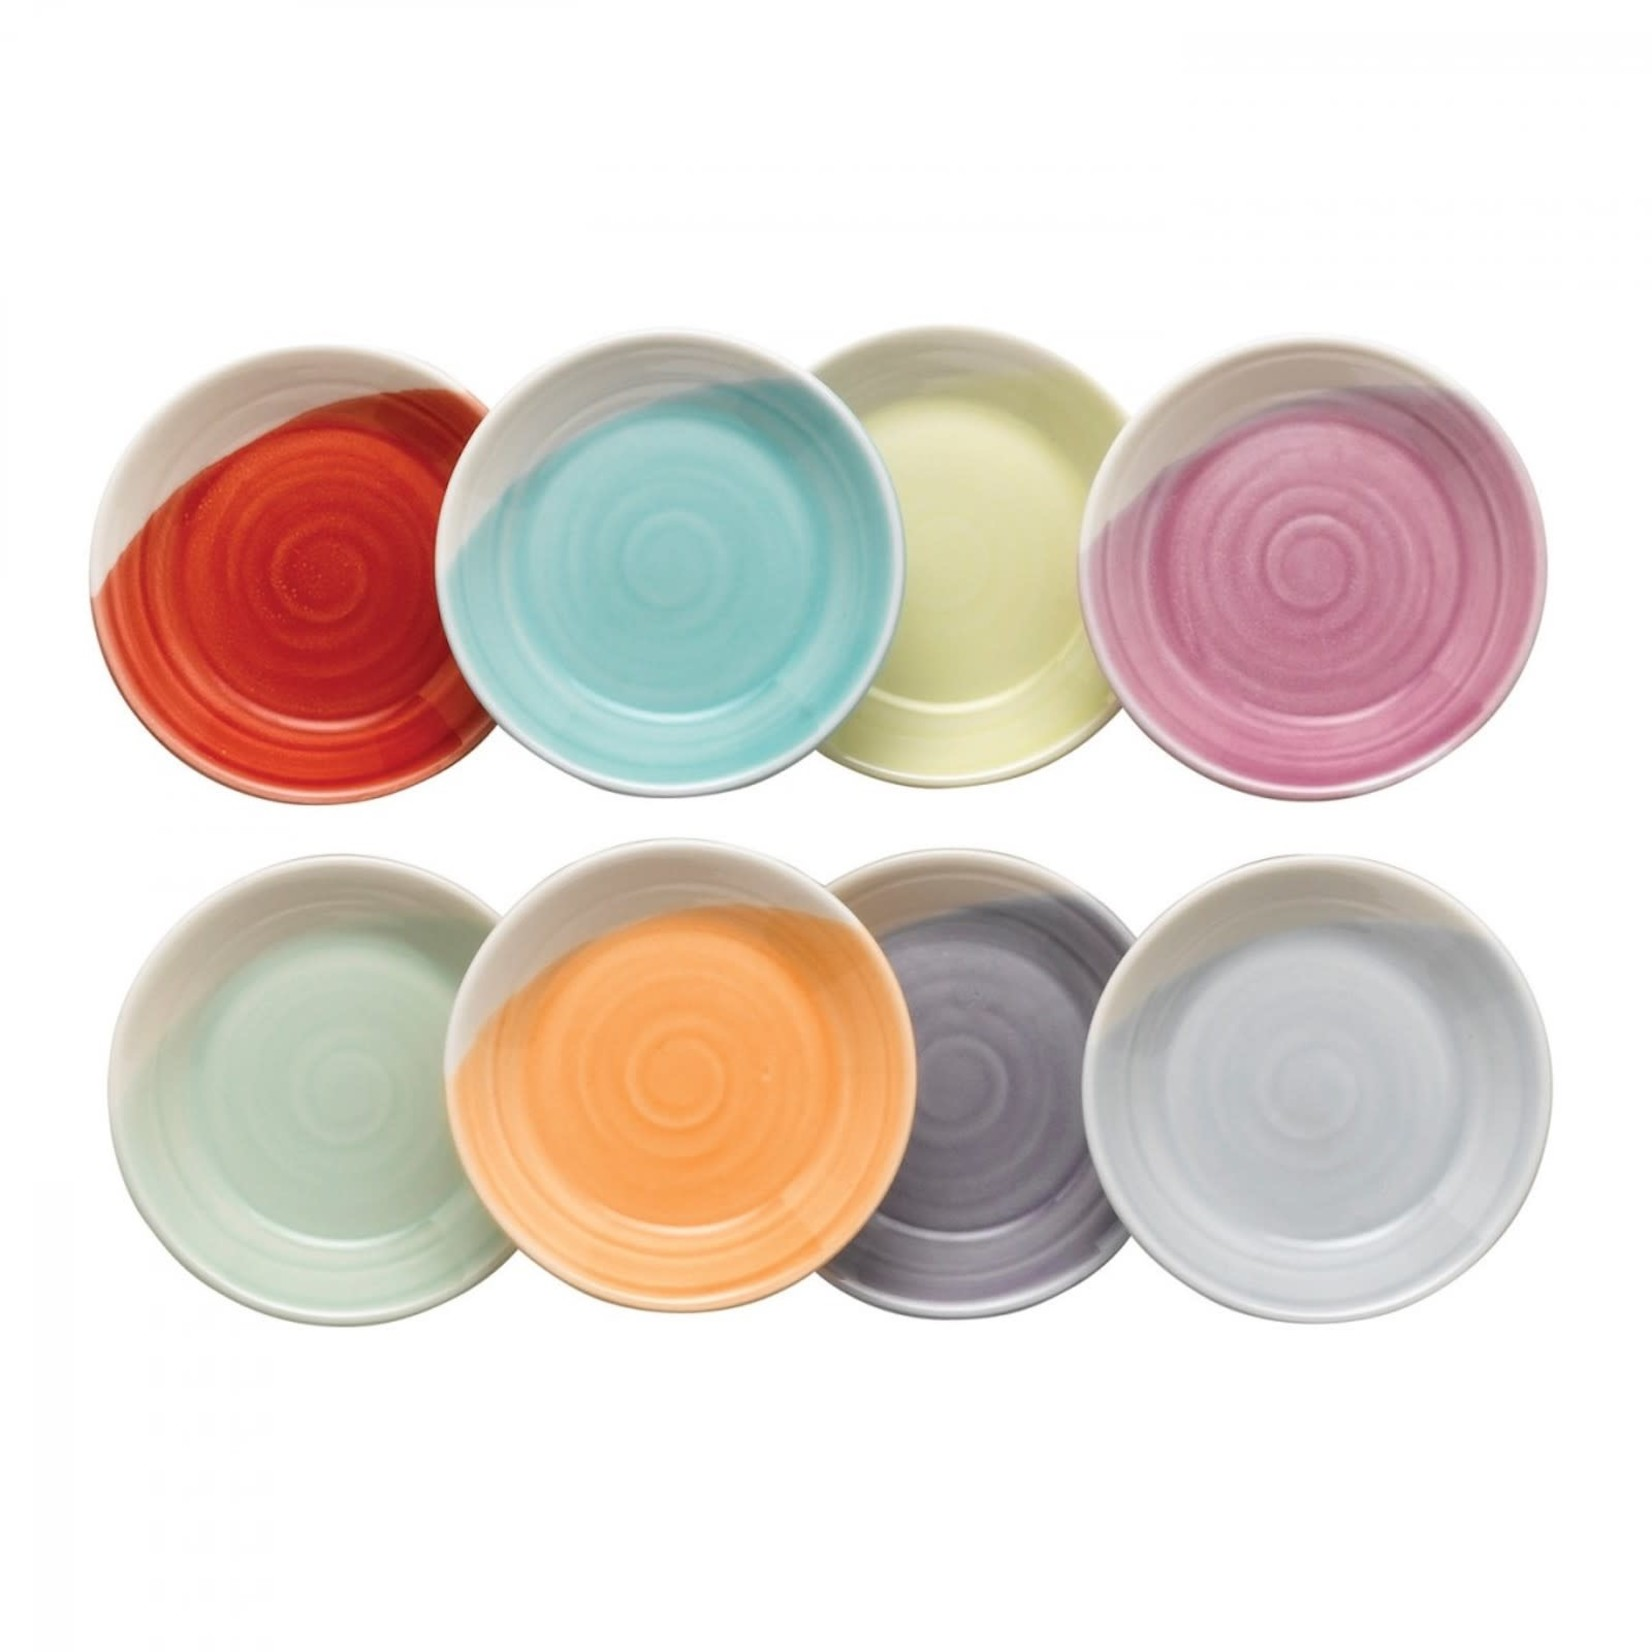 Royal Doulton 1815 Tapas Plates Set of 8